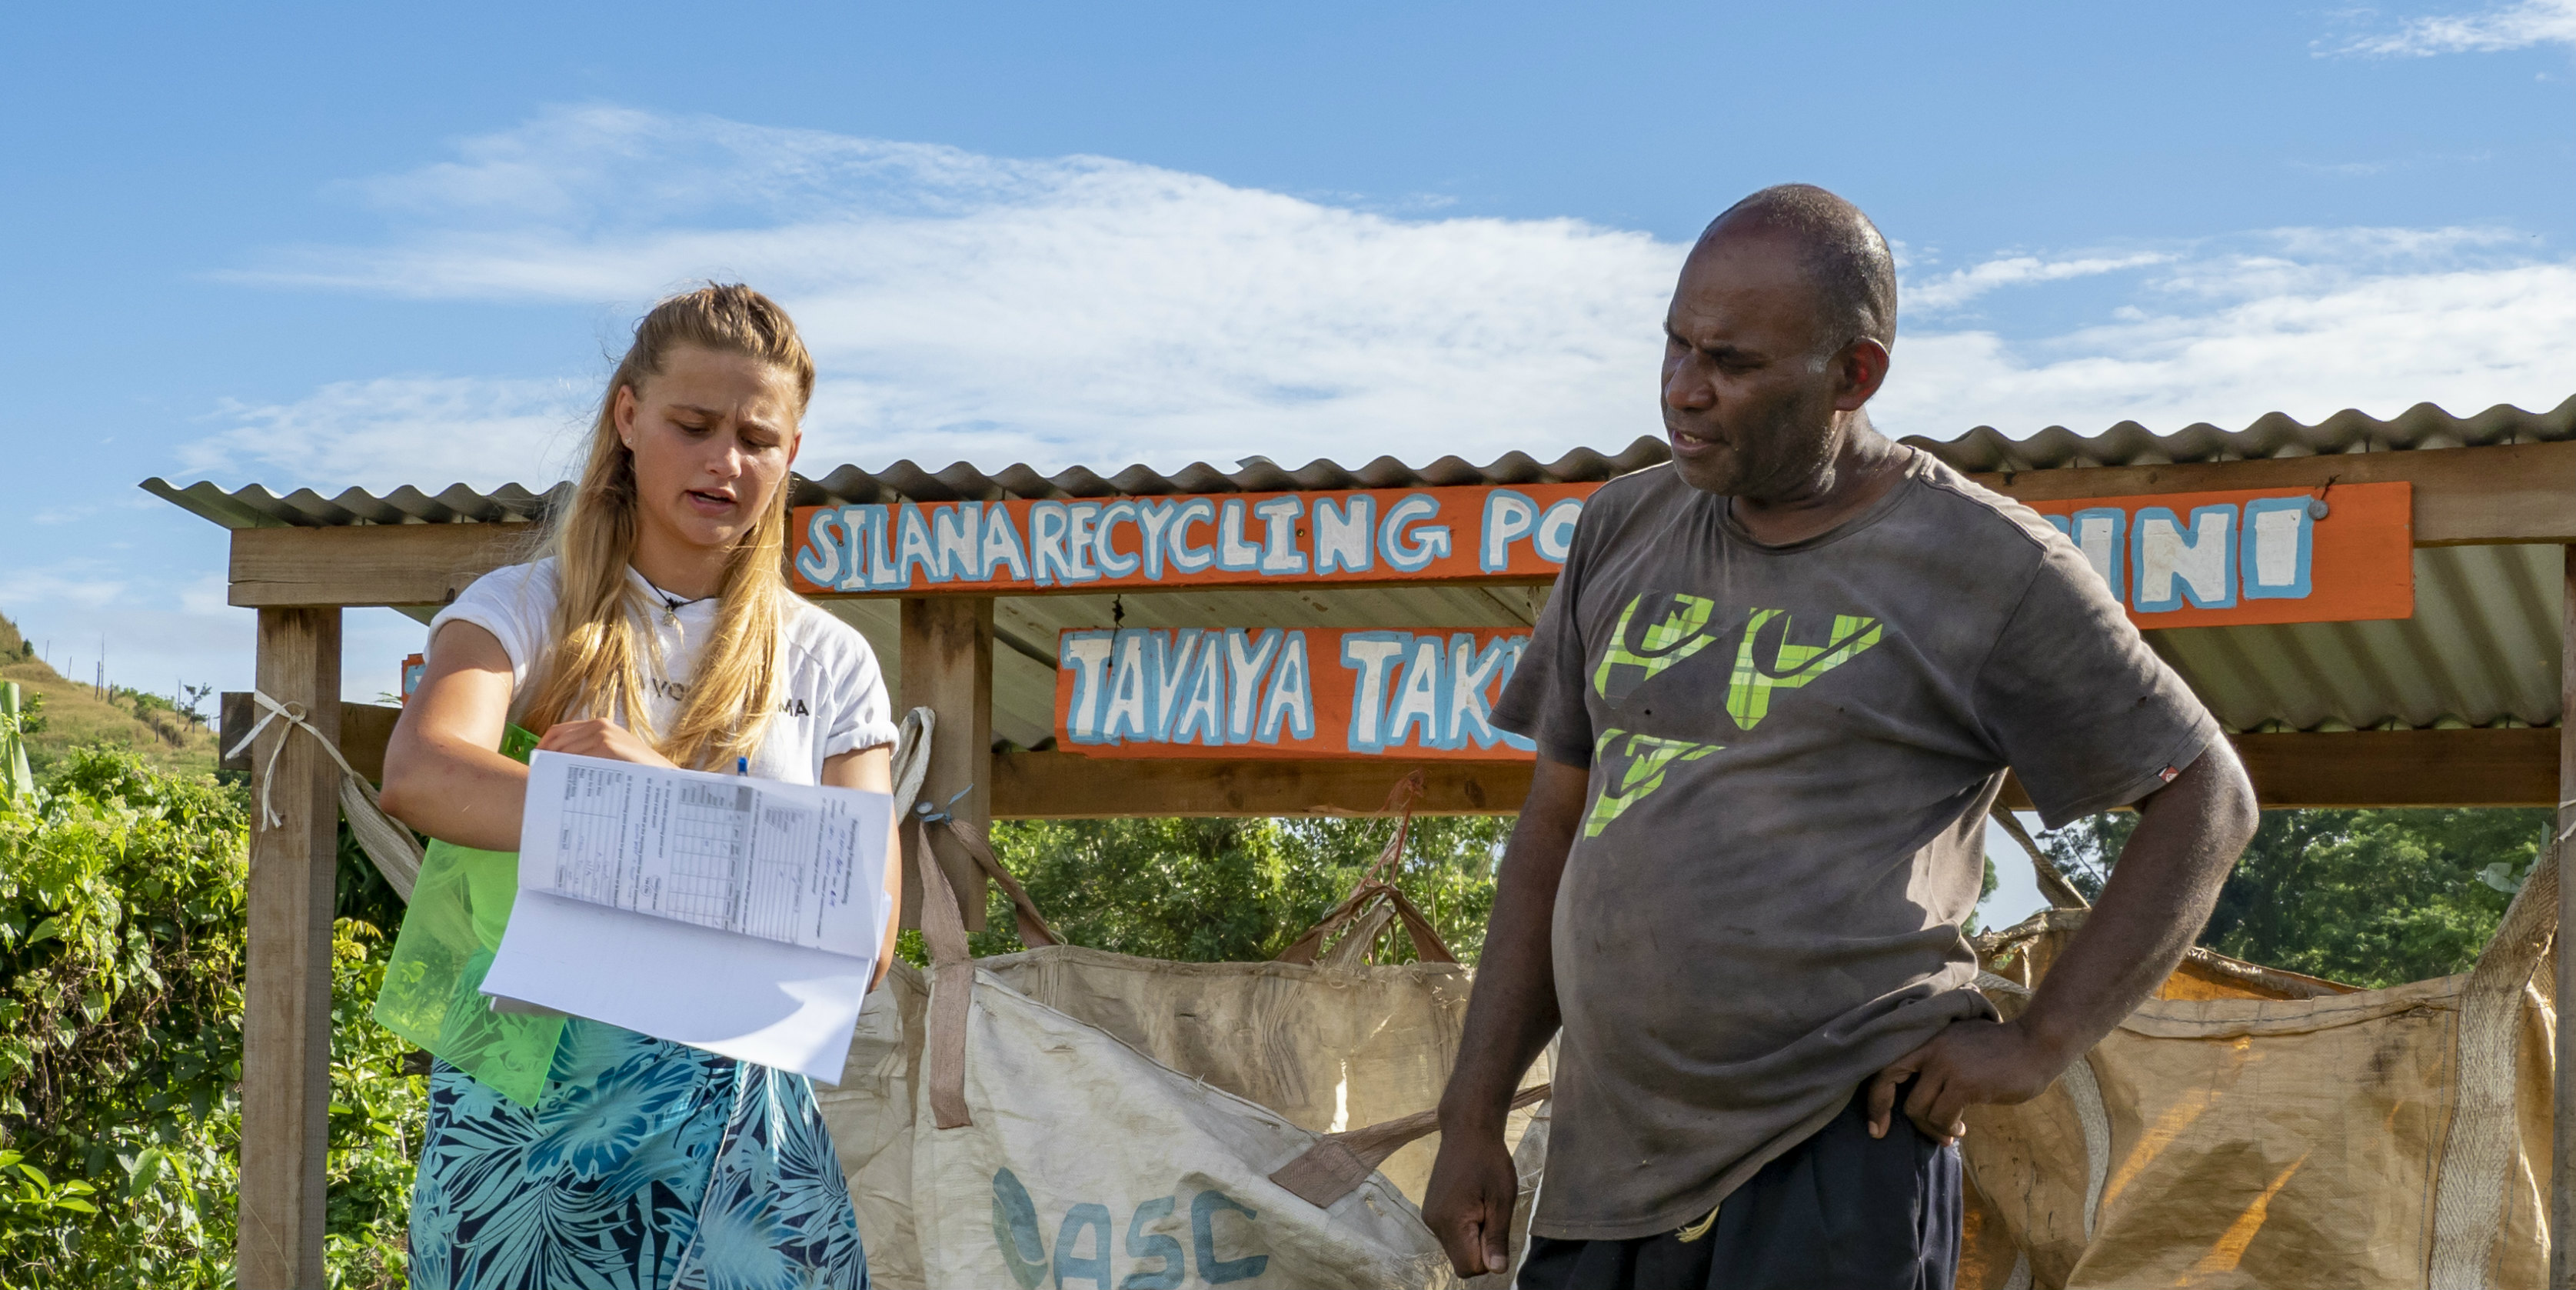 A GVI participant collaborates with a local community member on a recycling program. Being a global citizen involves genuine engagement with local communities.